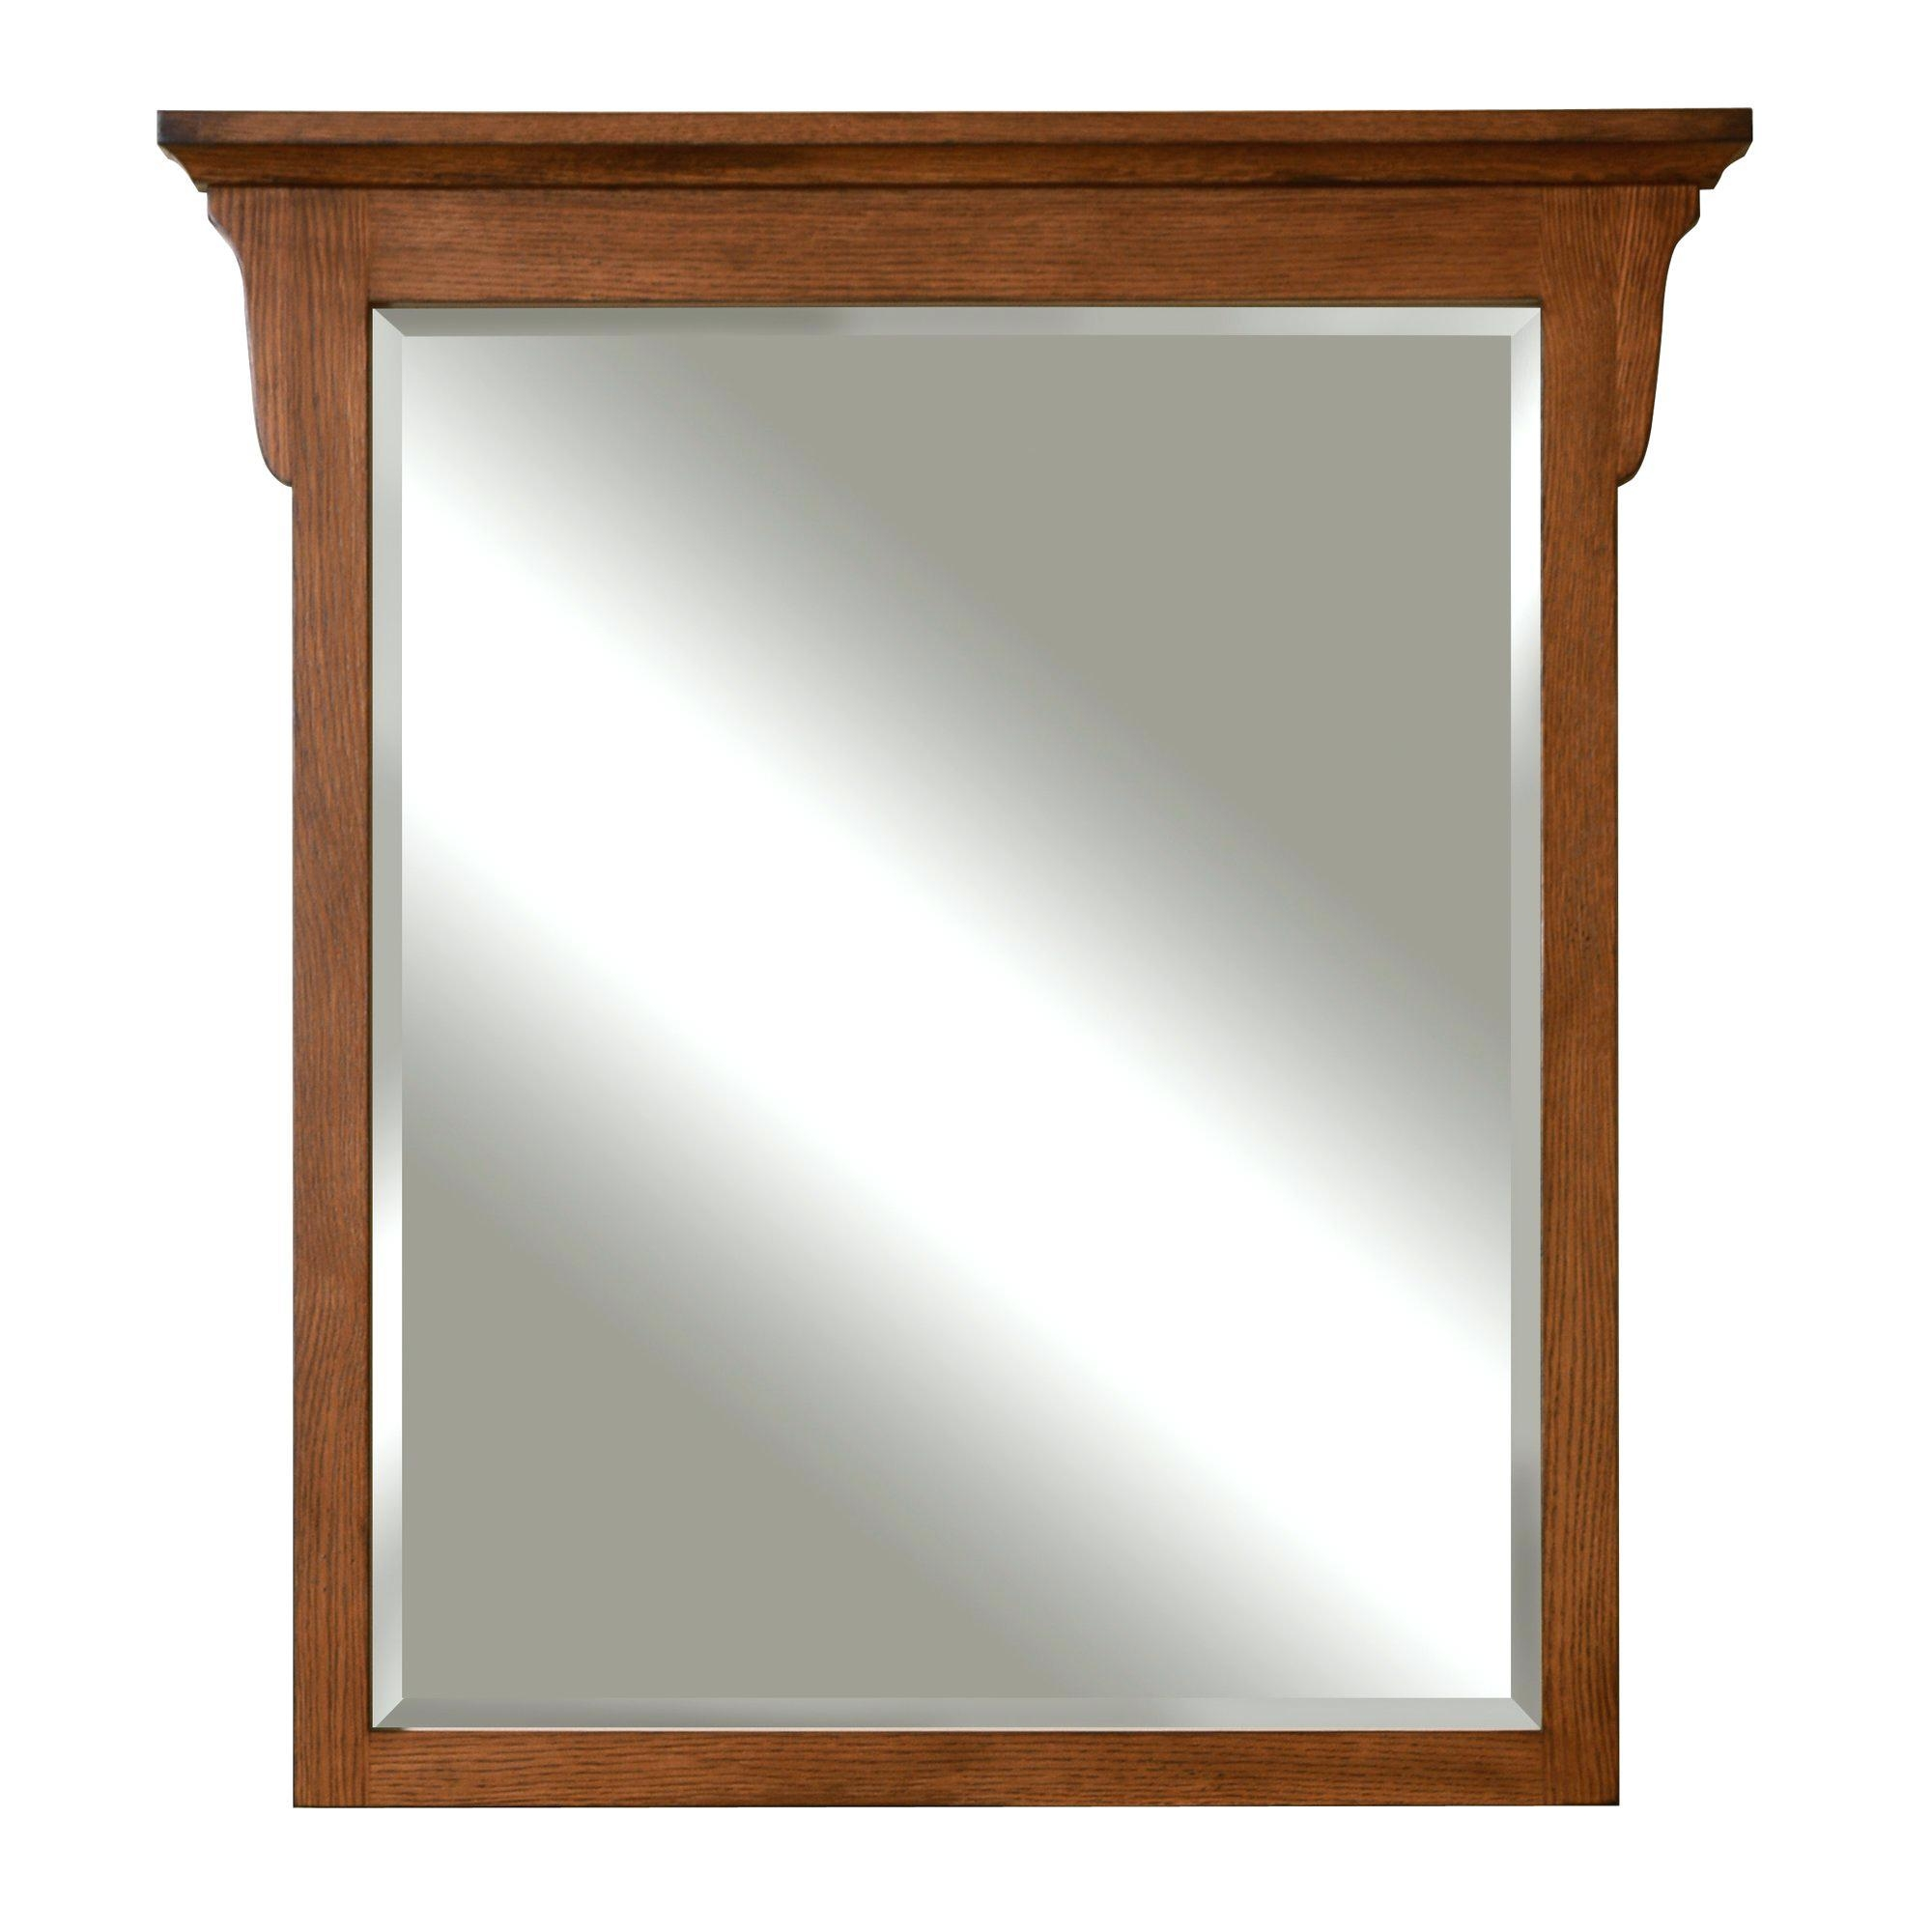 Oak Mirror Rustic Framed Custom Made Distressed Oaklarge Wood With Regard To Large Oak Mirrors (View 15 of 20)